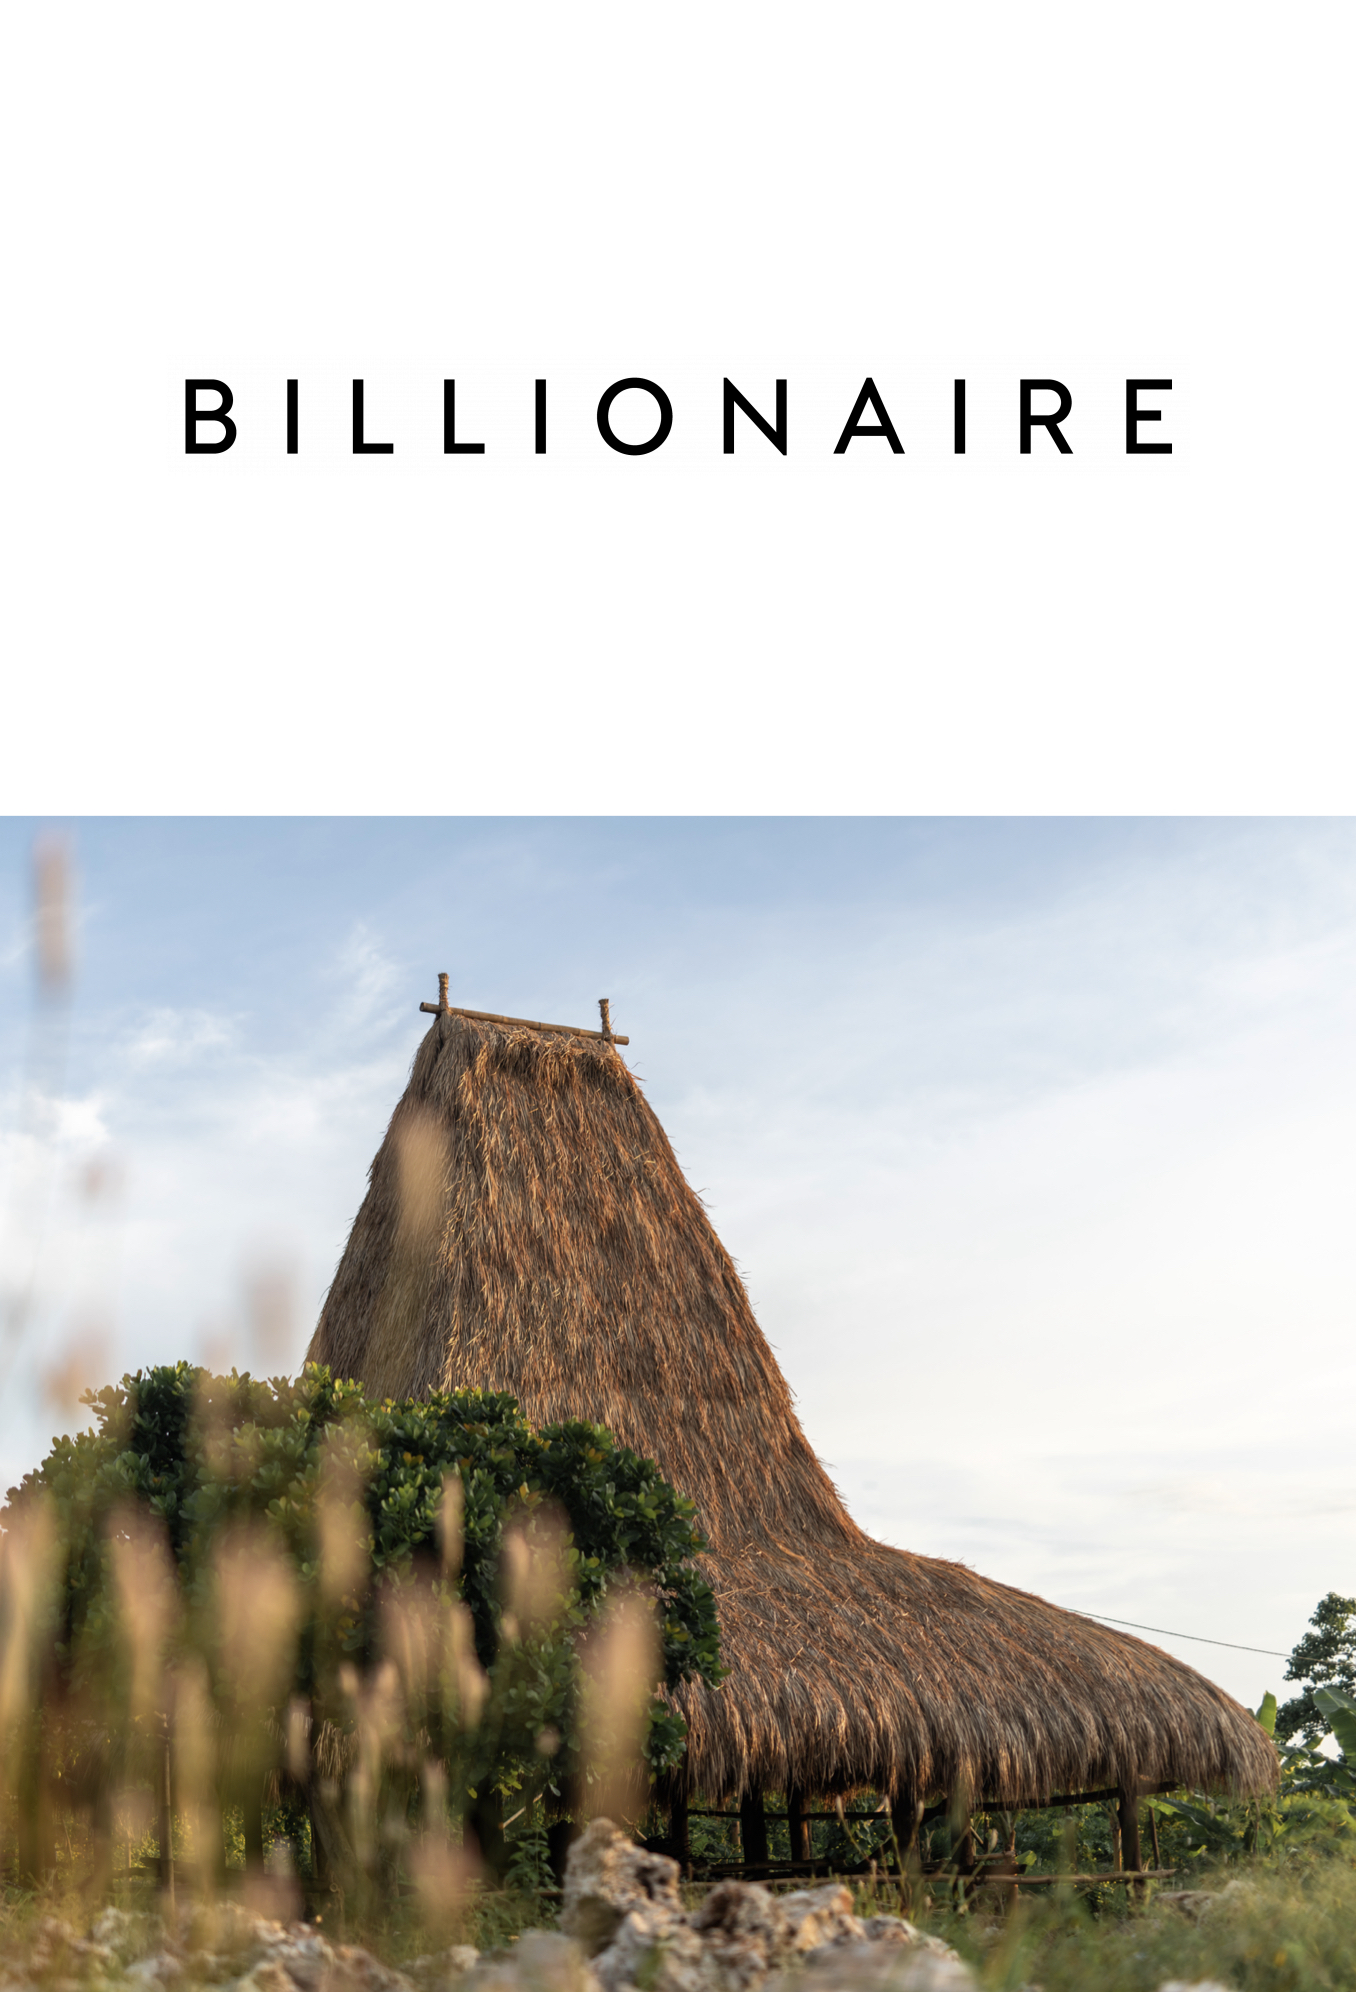 Billionaire Cover for Press Page with Community House picture